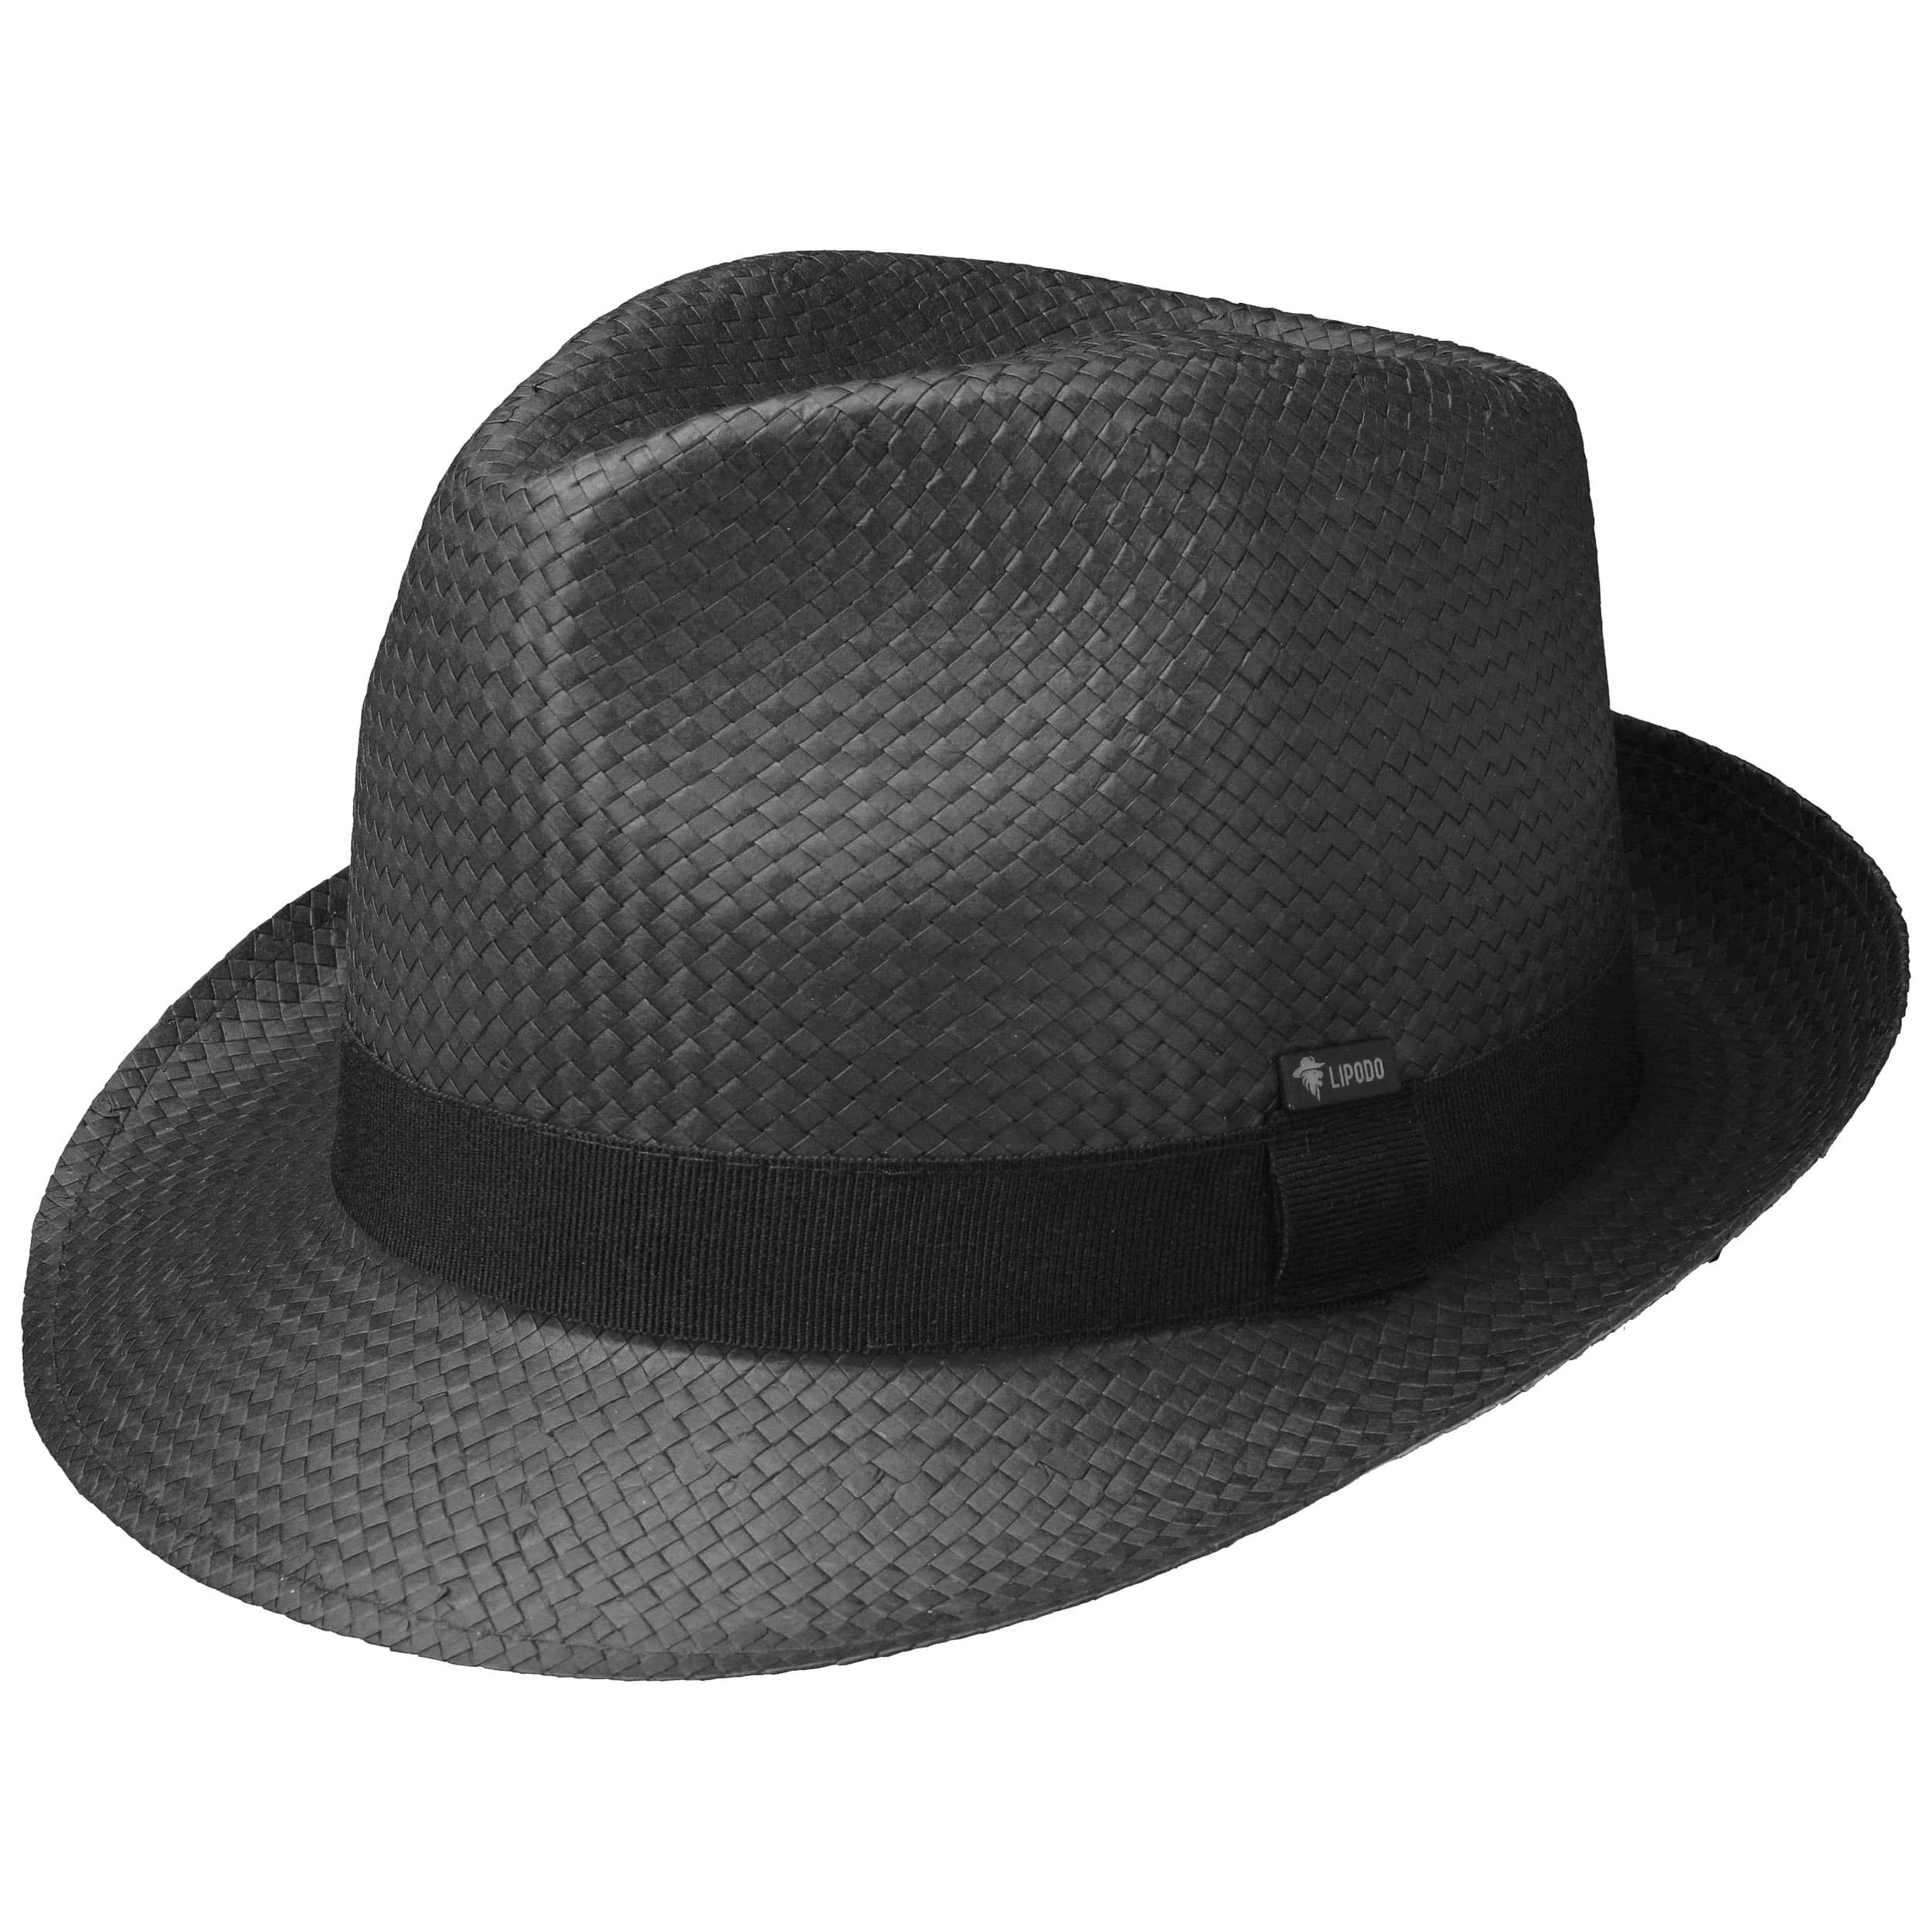 Black City Trilby Hat by Lipodo 8aad4d3fd69